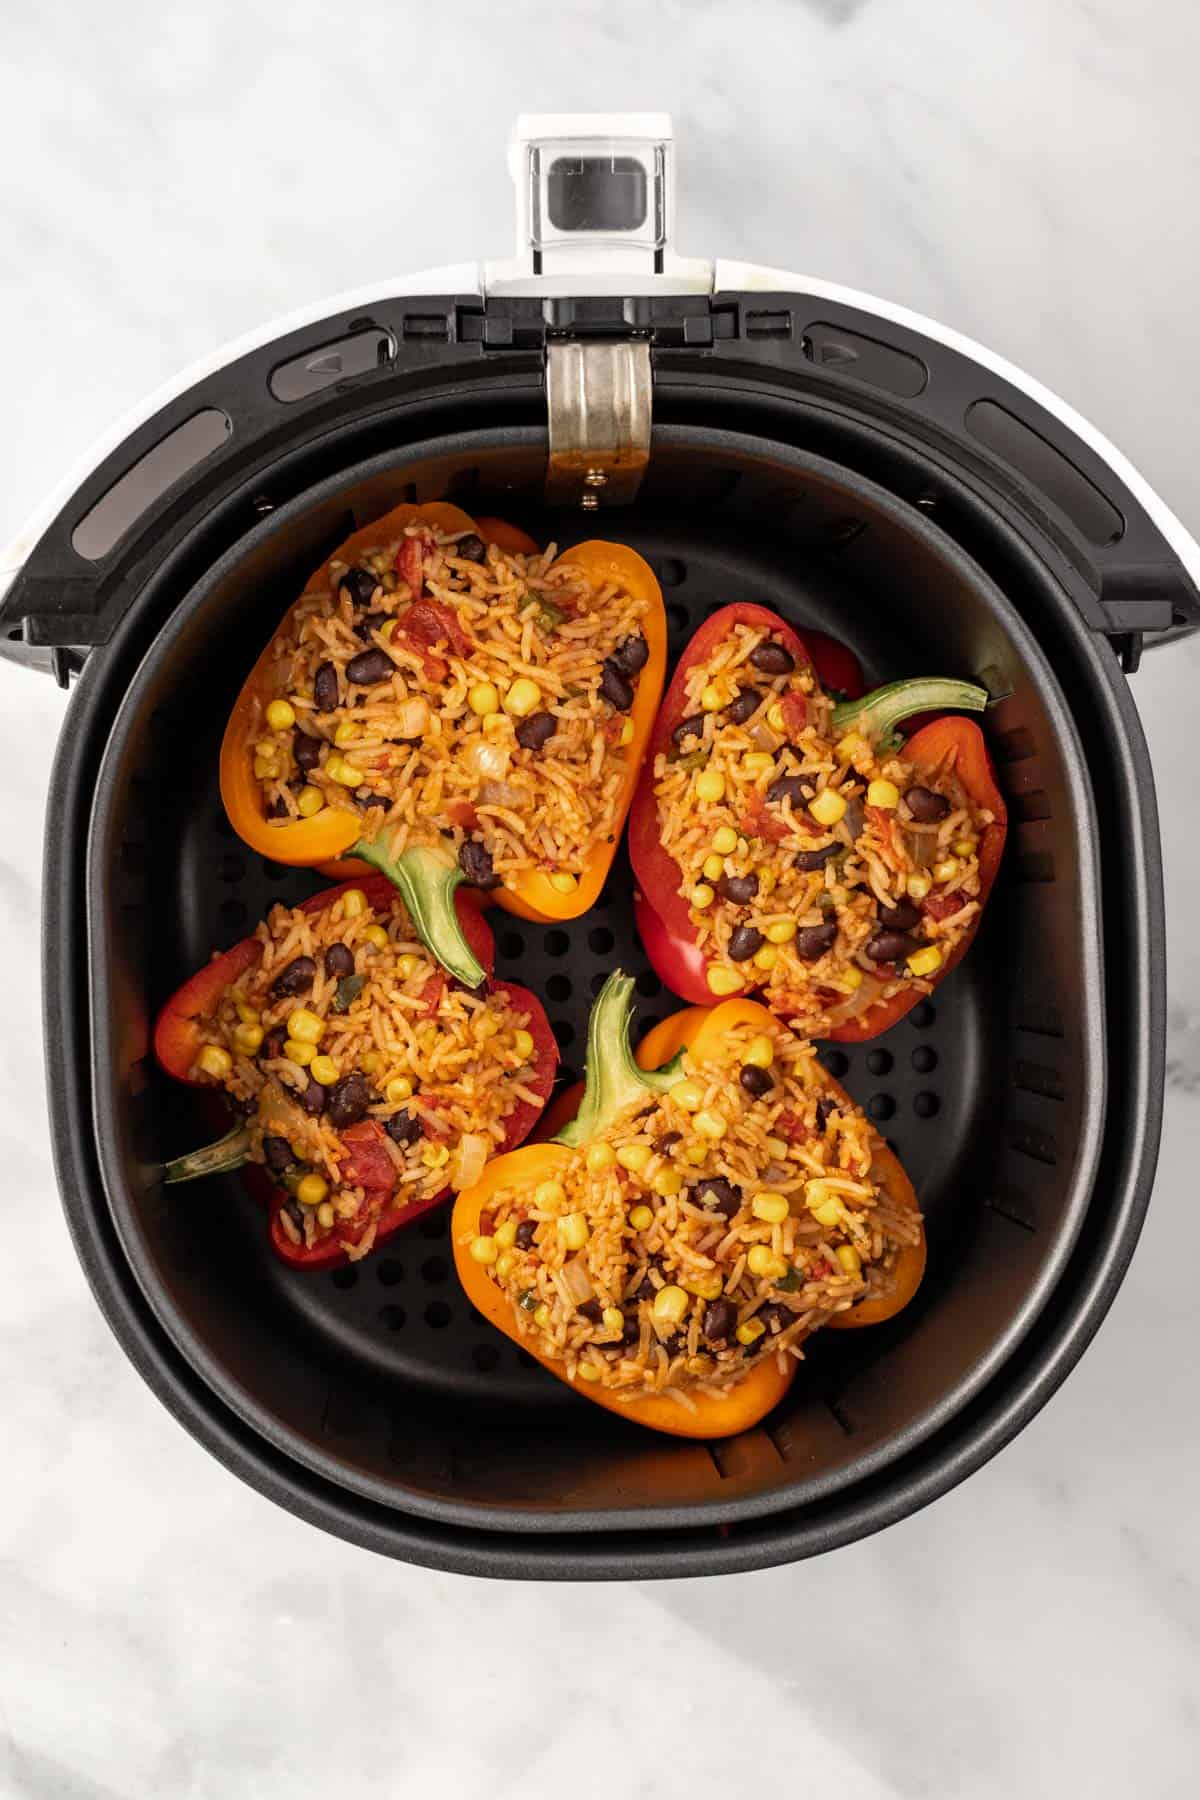 Uncooked stuffed peppers in an air fryer basket.